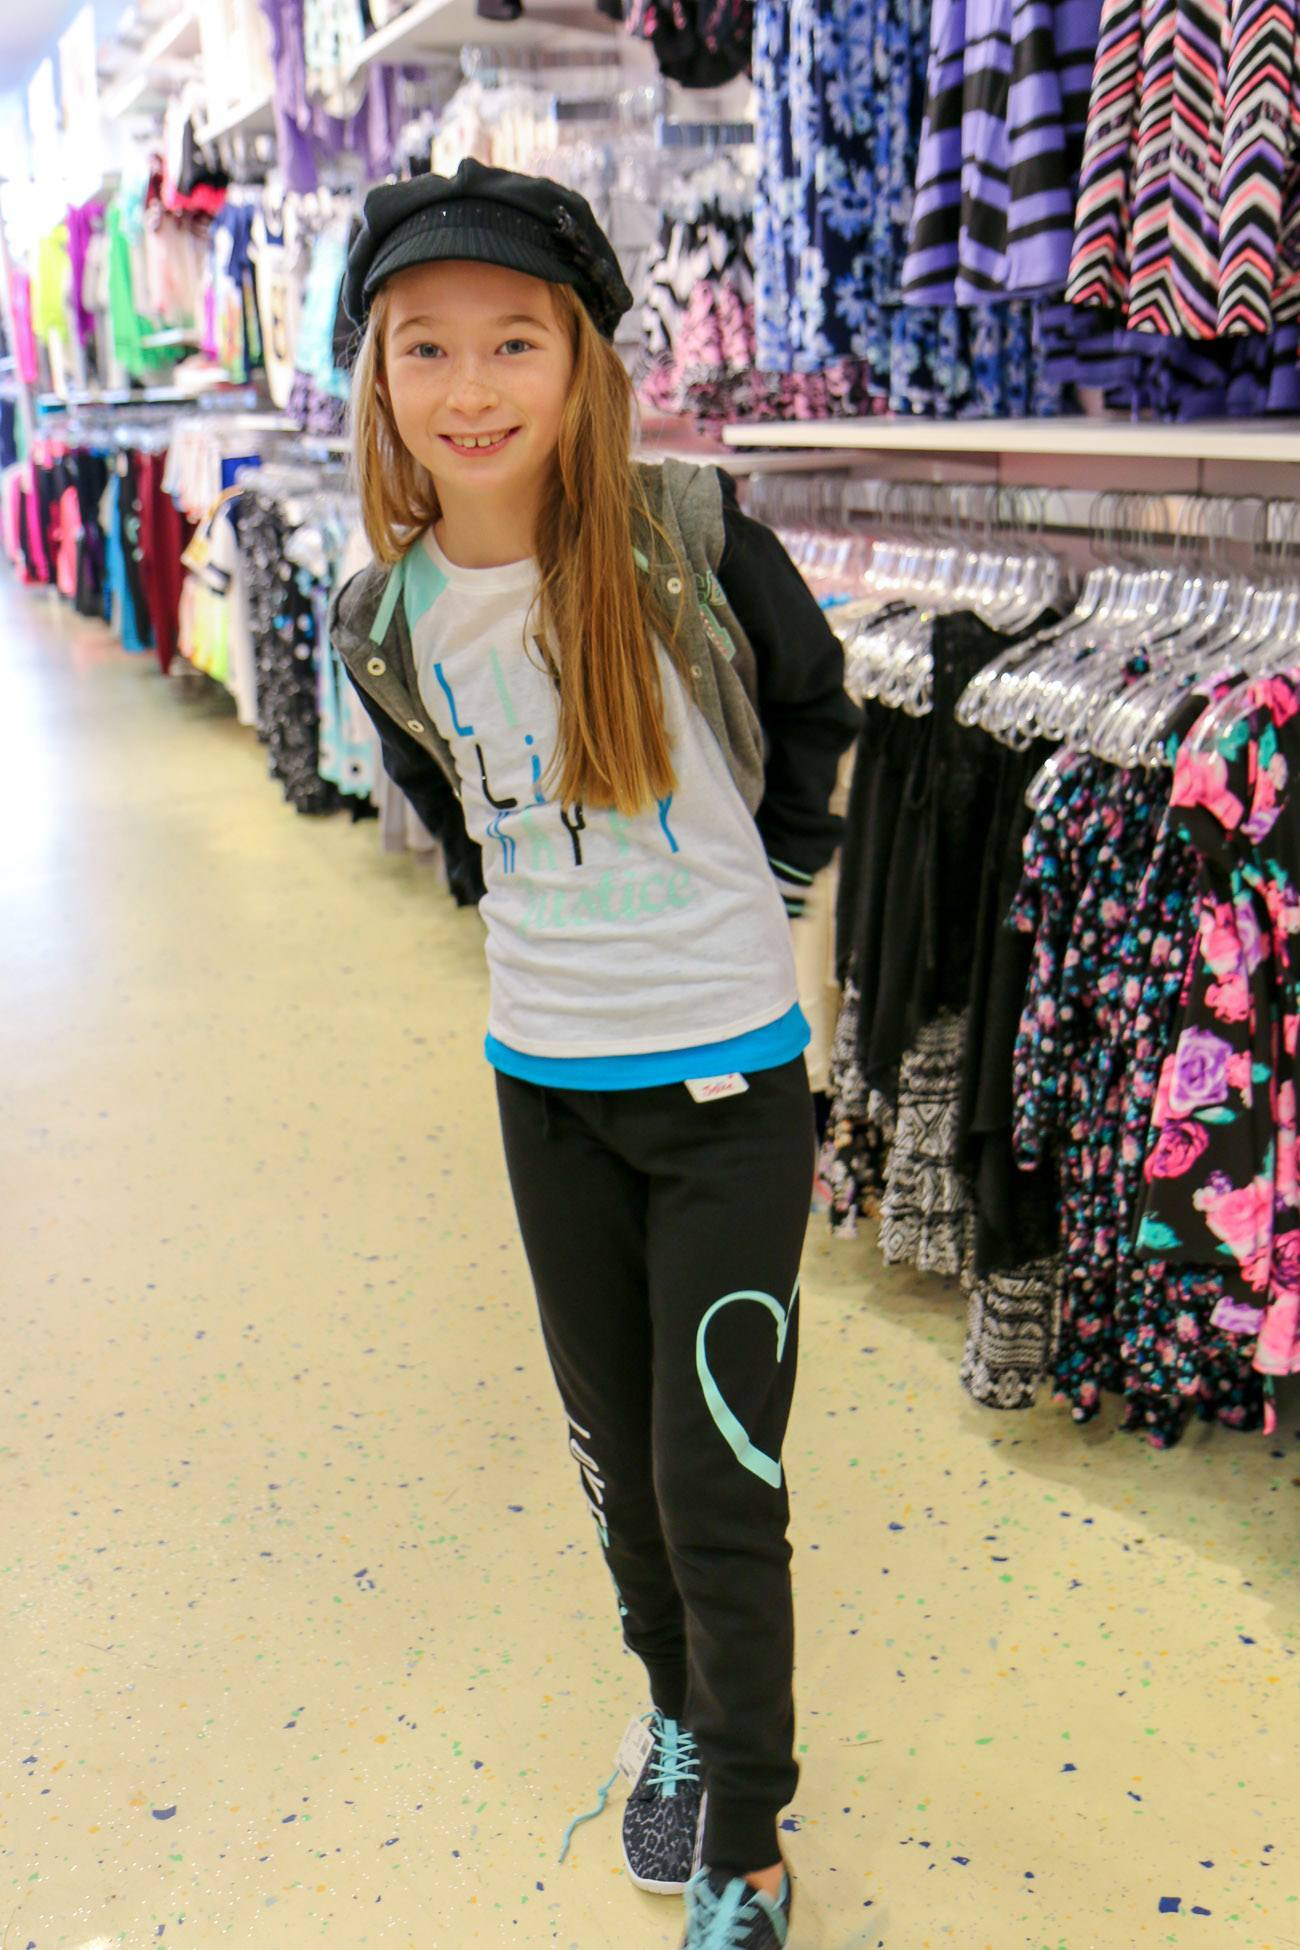 Activewear at Justice for girls that is part of their fall back-to-school clothing line.